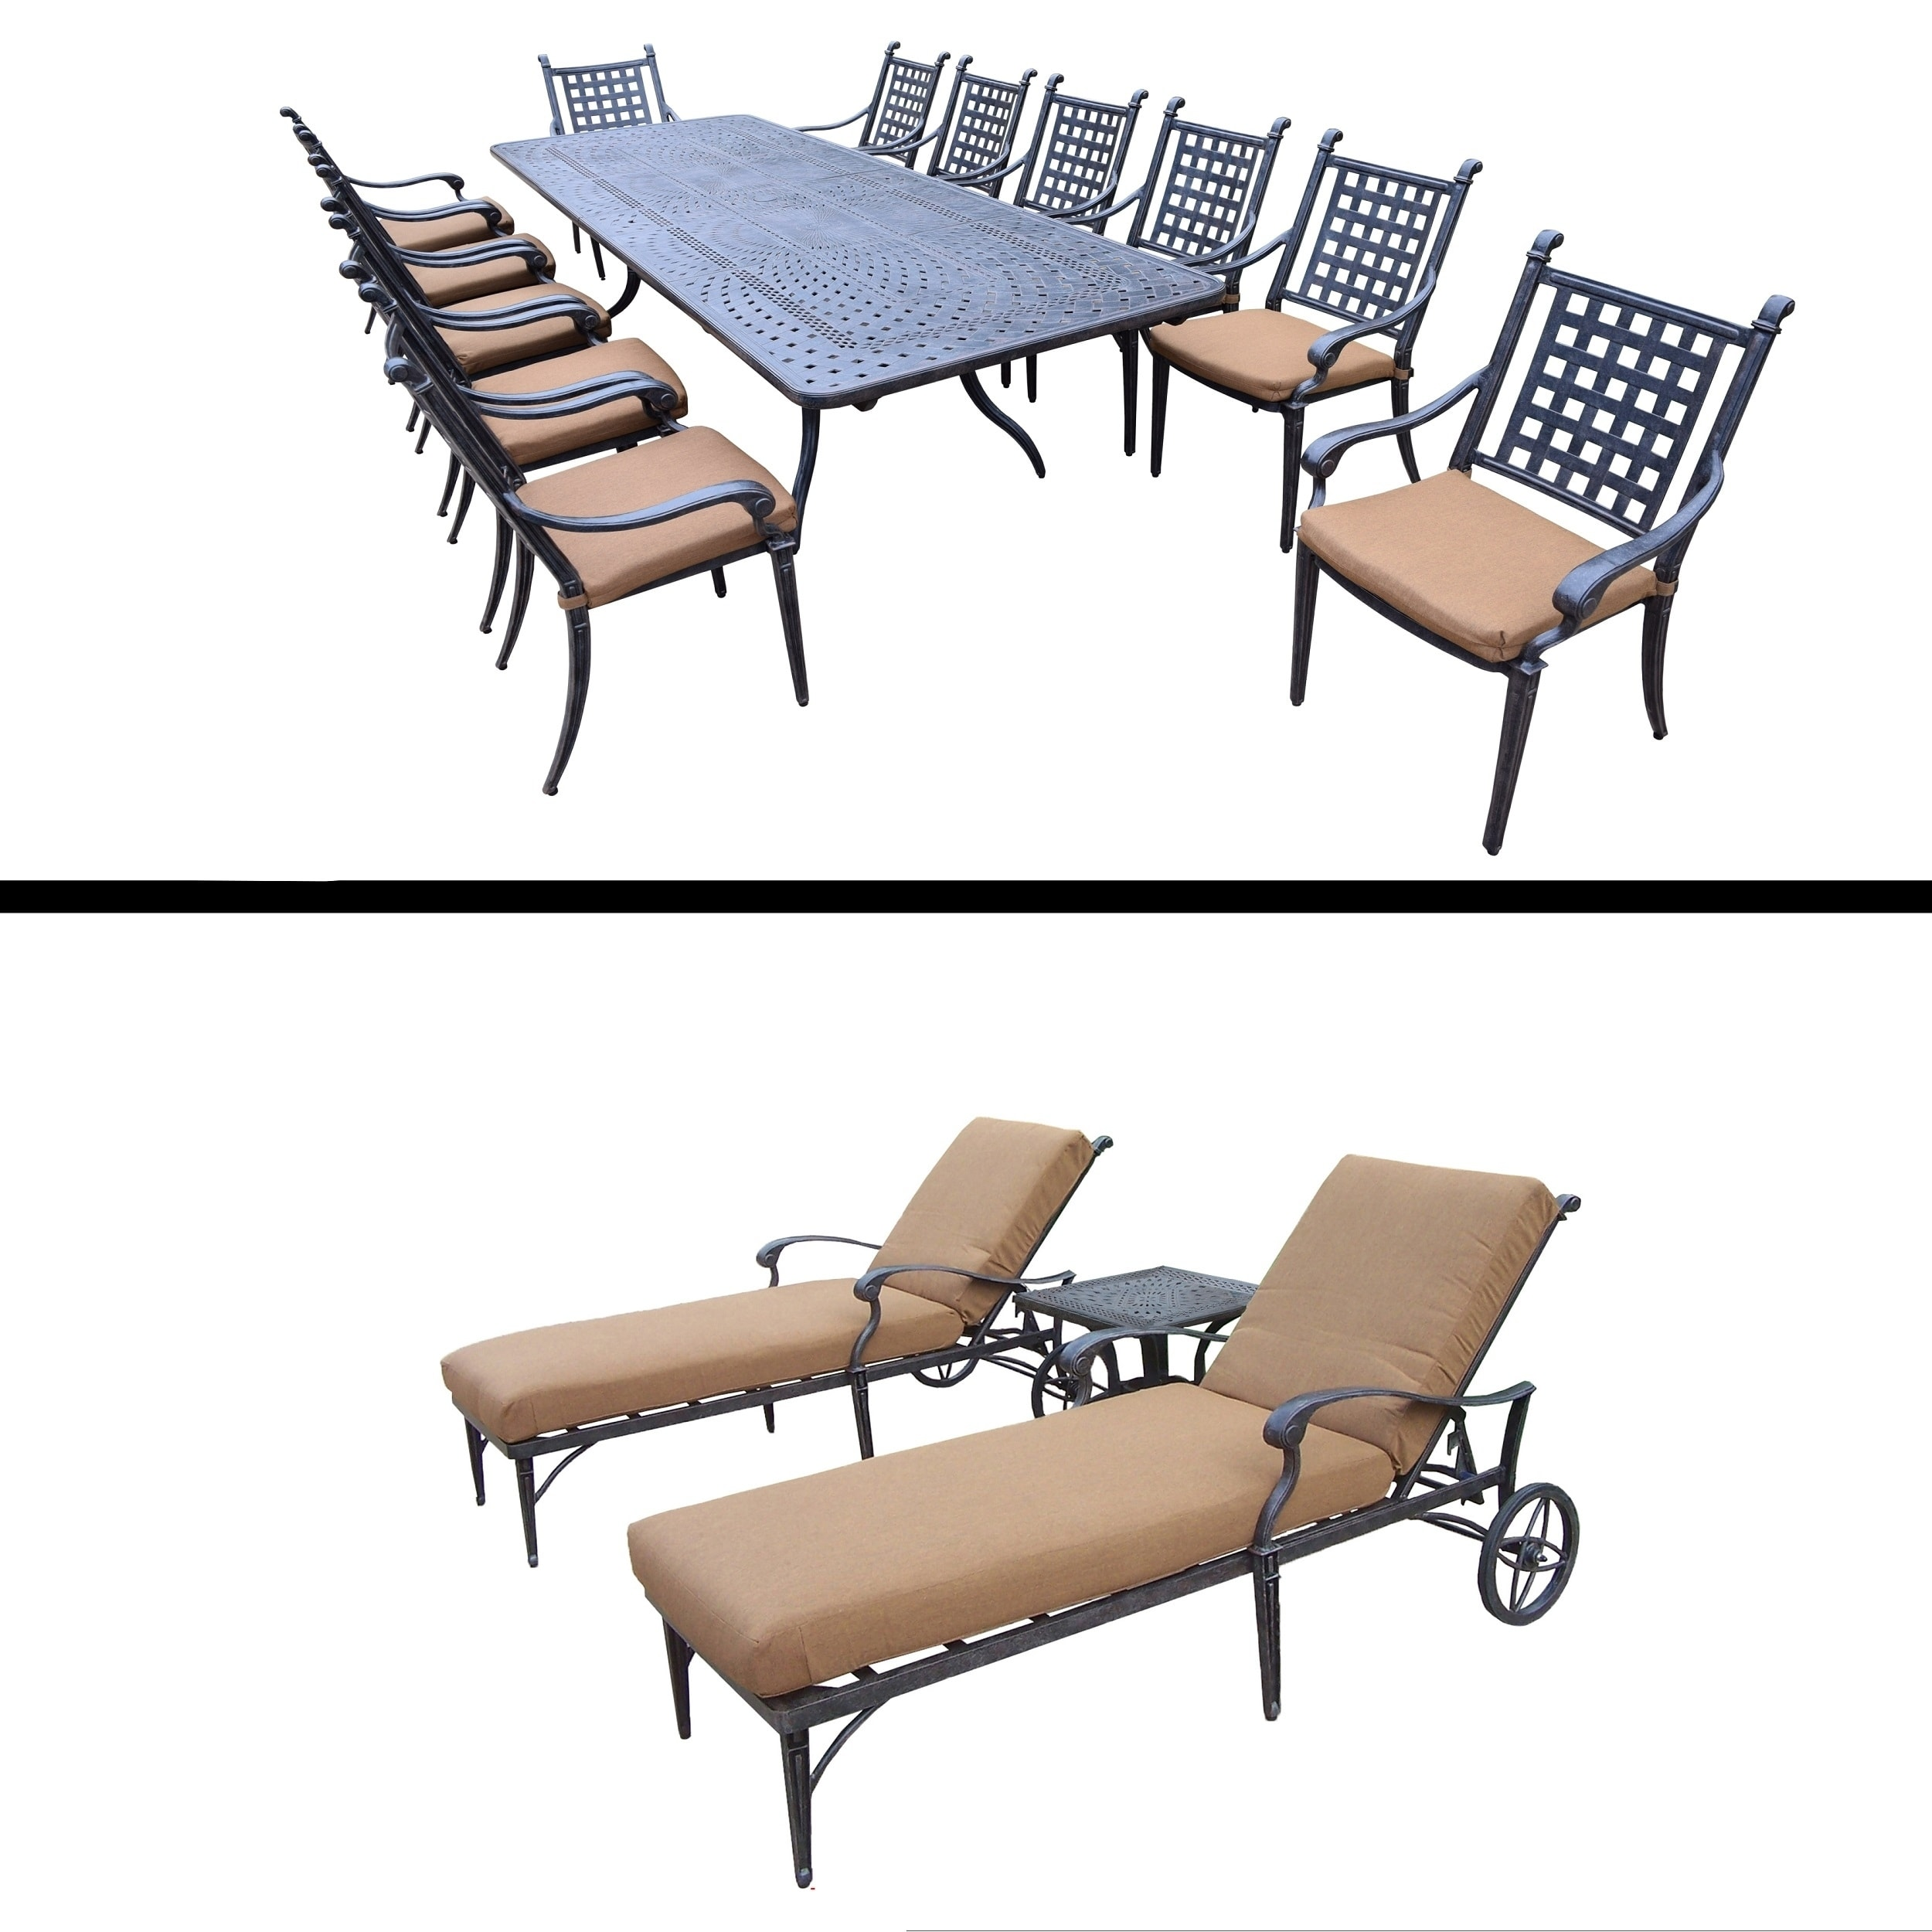 Oakland Living 13 Pc Dining Room Set with Extendable Table and 3 Pc Lounge Set by Overstock